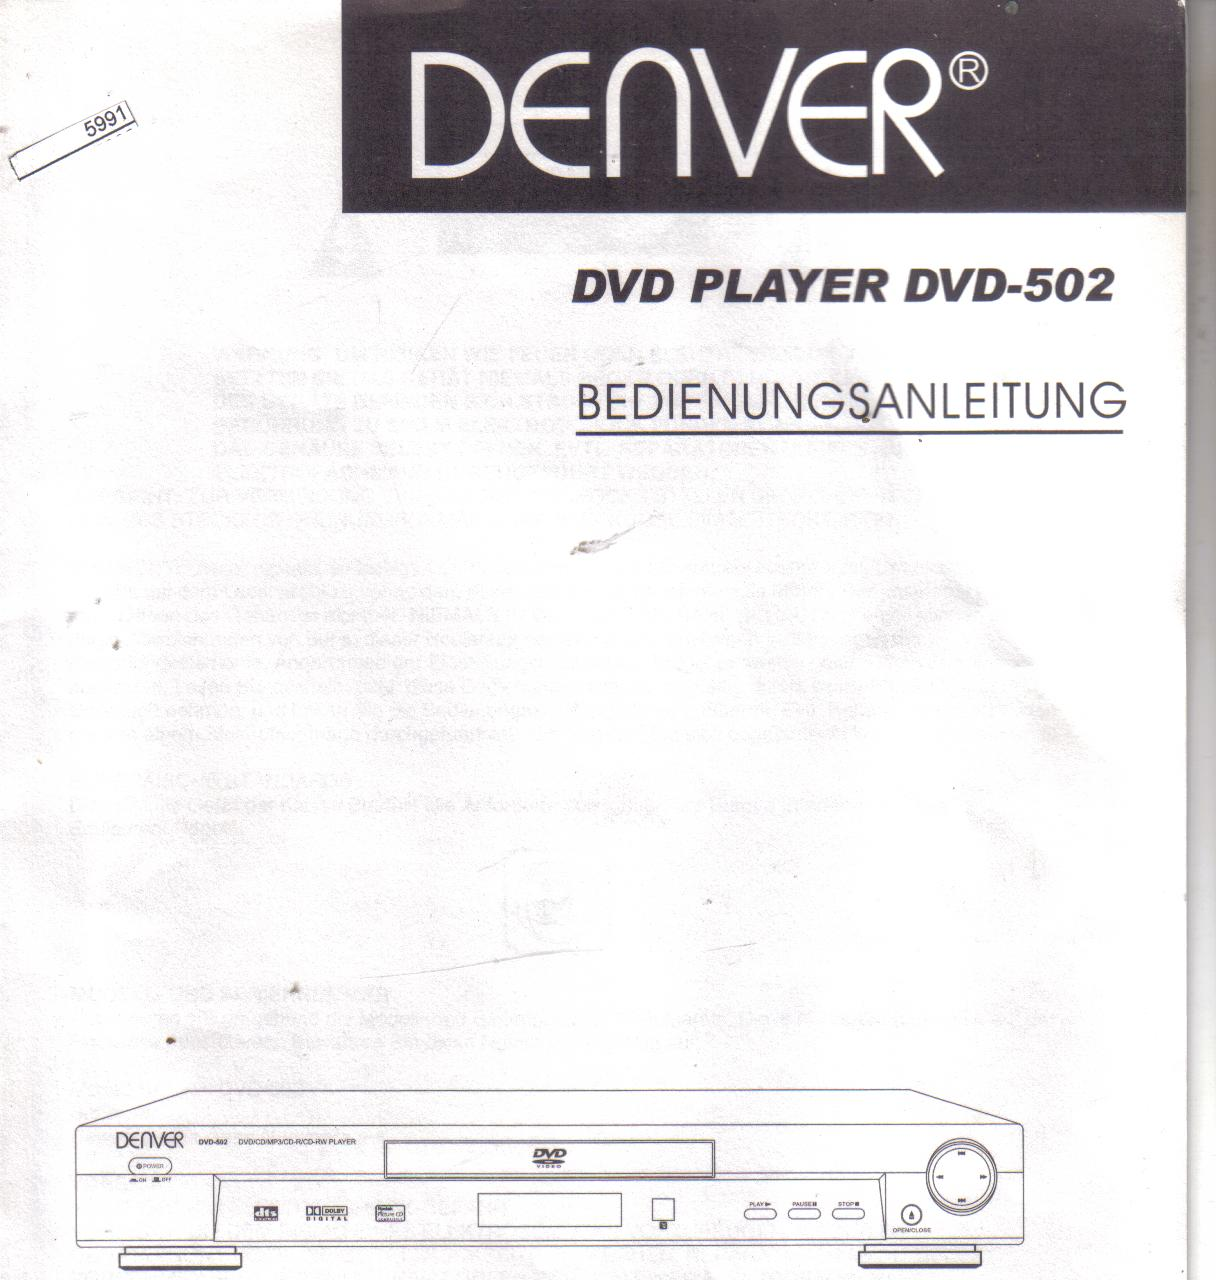 Denver  DVD Player DVD-502 Bedienungsanleitung